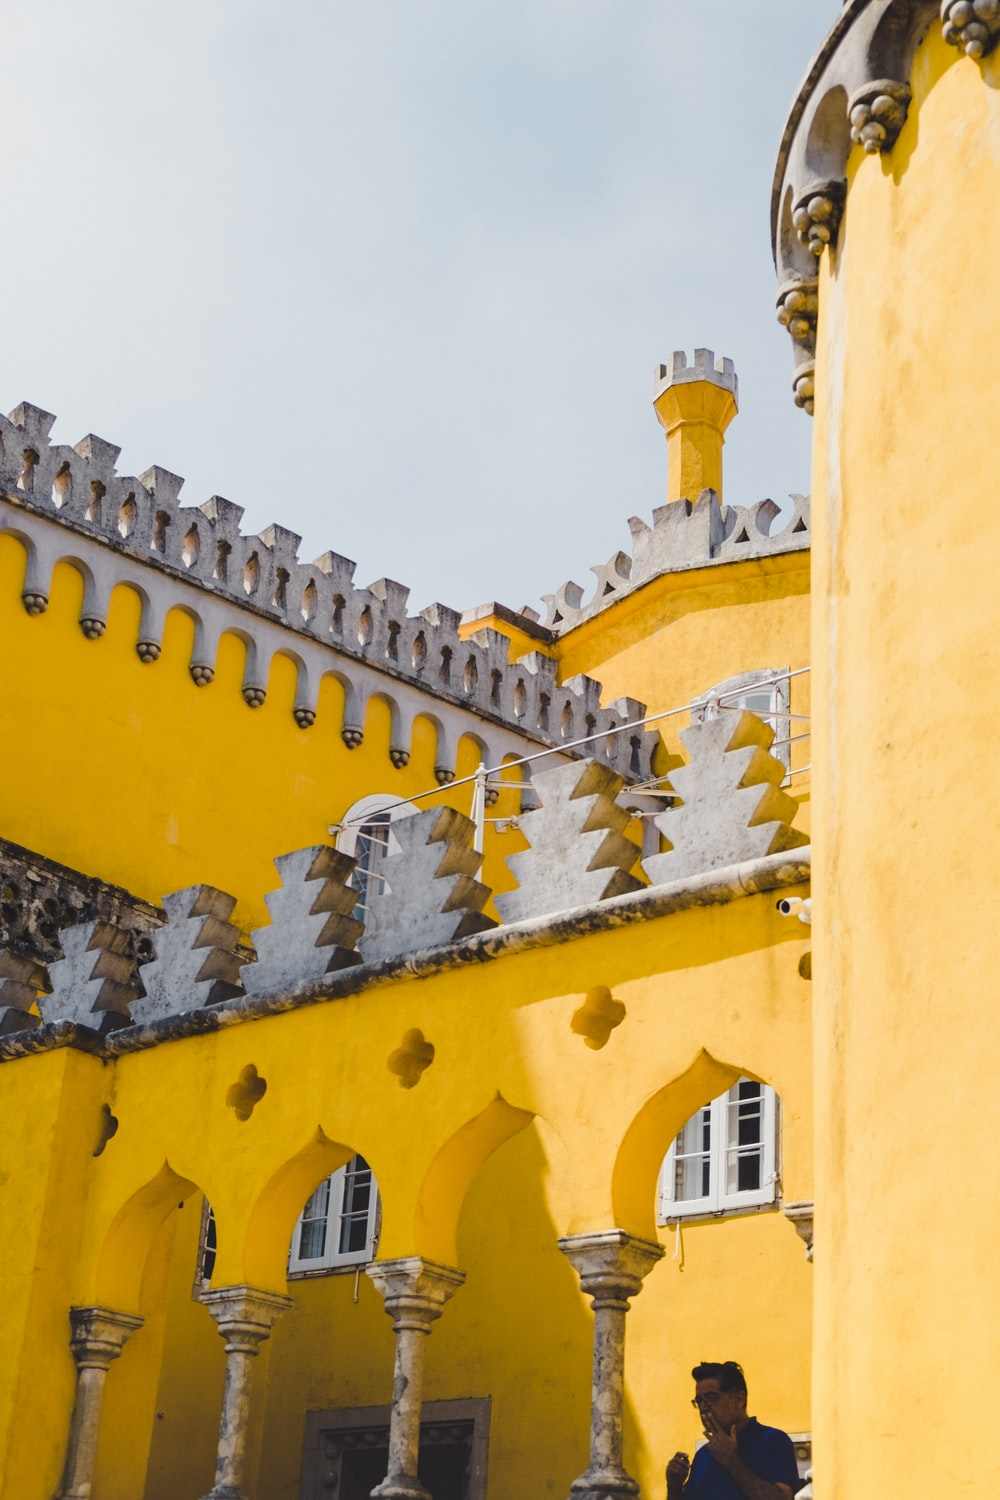 low angle photo of yellow concrete building